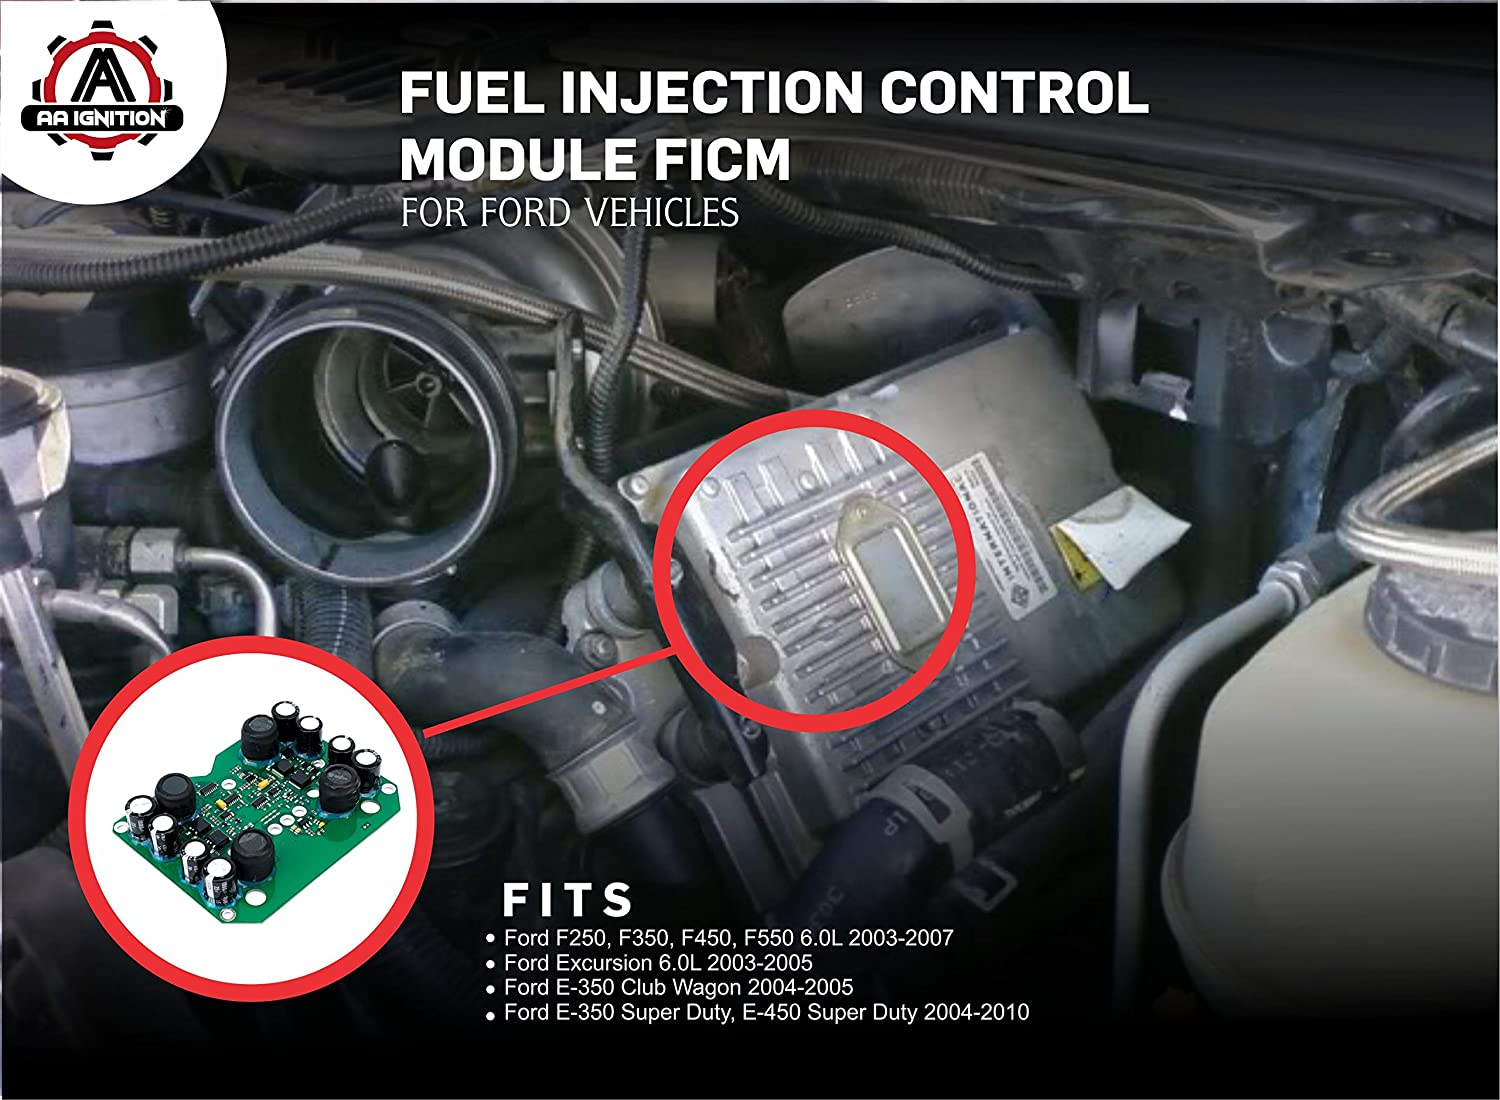 Ficm 60 Powerstroke Fuel Injection Control Module 2003 6 0 Filters Fits Ford F250 F350 F450 F550 Excursion 60l Diesel Super Duty Replaces 904 229